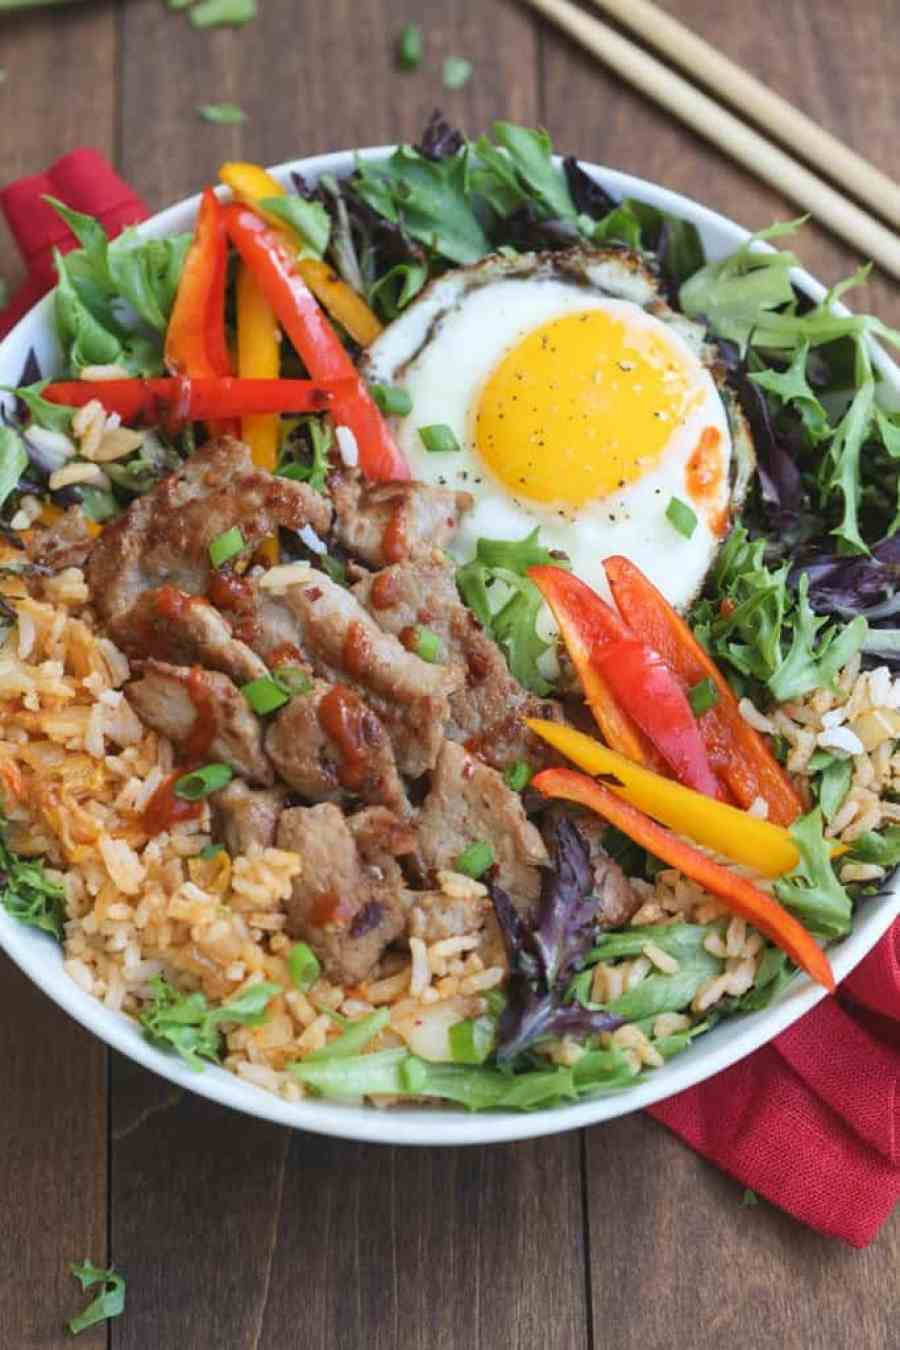 Korean Bulgogi Bowls   simple marinated bulgogi pork served over kimchi fried rice and leafy greens with a fried egg on top. Packed with flavor, these bowls are AMAZING!   Tastes Better From Scratch